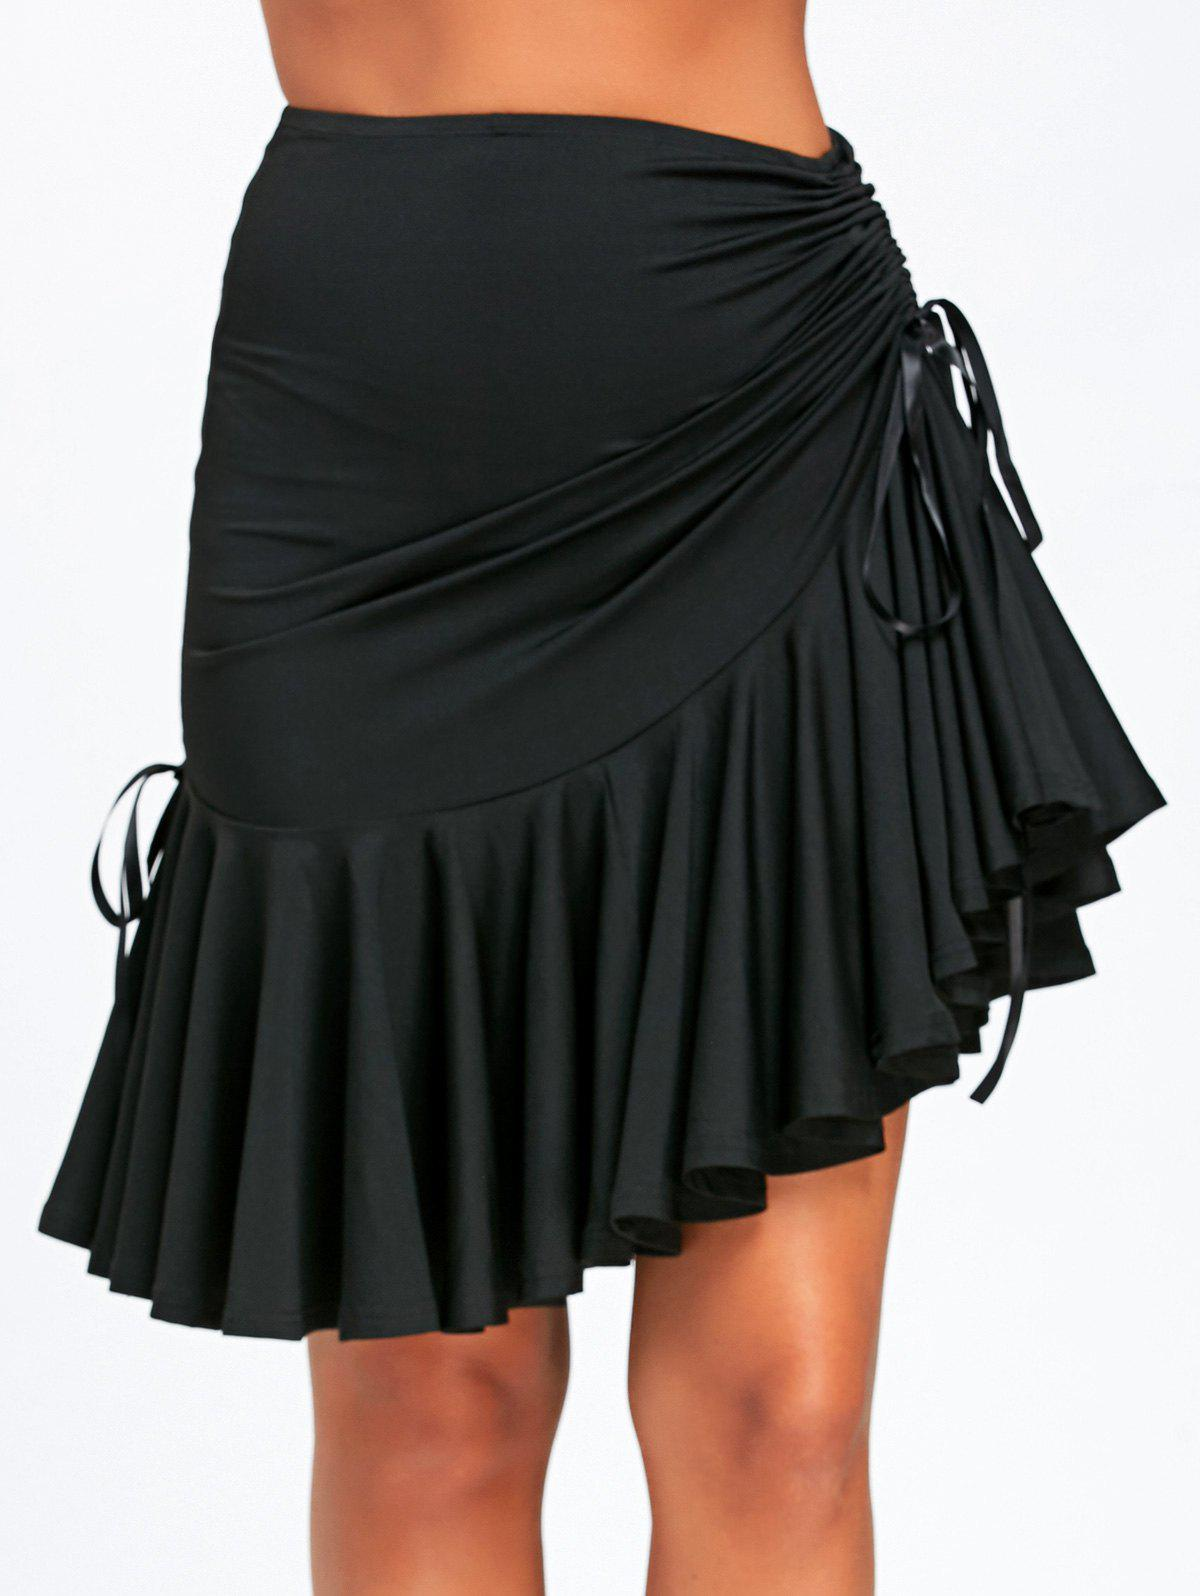 Ruched Ruffle Adjustable SkirtWOMEN<br><br>Size: XL; Color: BLACK; Material: Polyester; Length: Knee-Length; Silhouette: A-Line; Pattern Type: Solid; Season: Fall,Spring; Weight: 0.3500kg; Package Contents: 1 x Skirt;